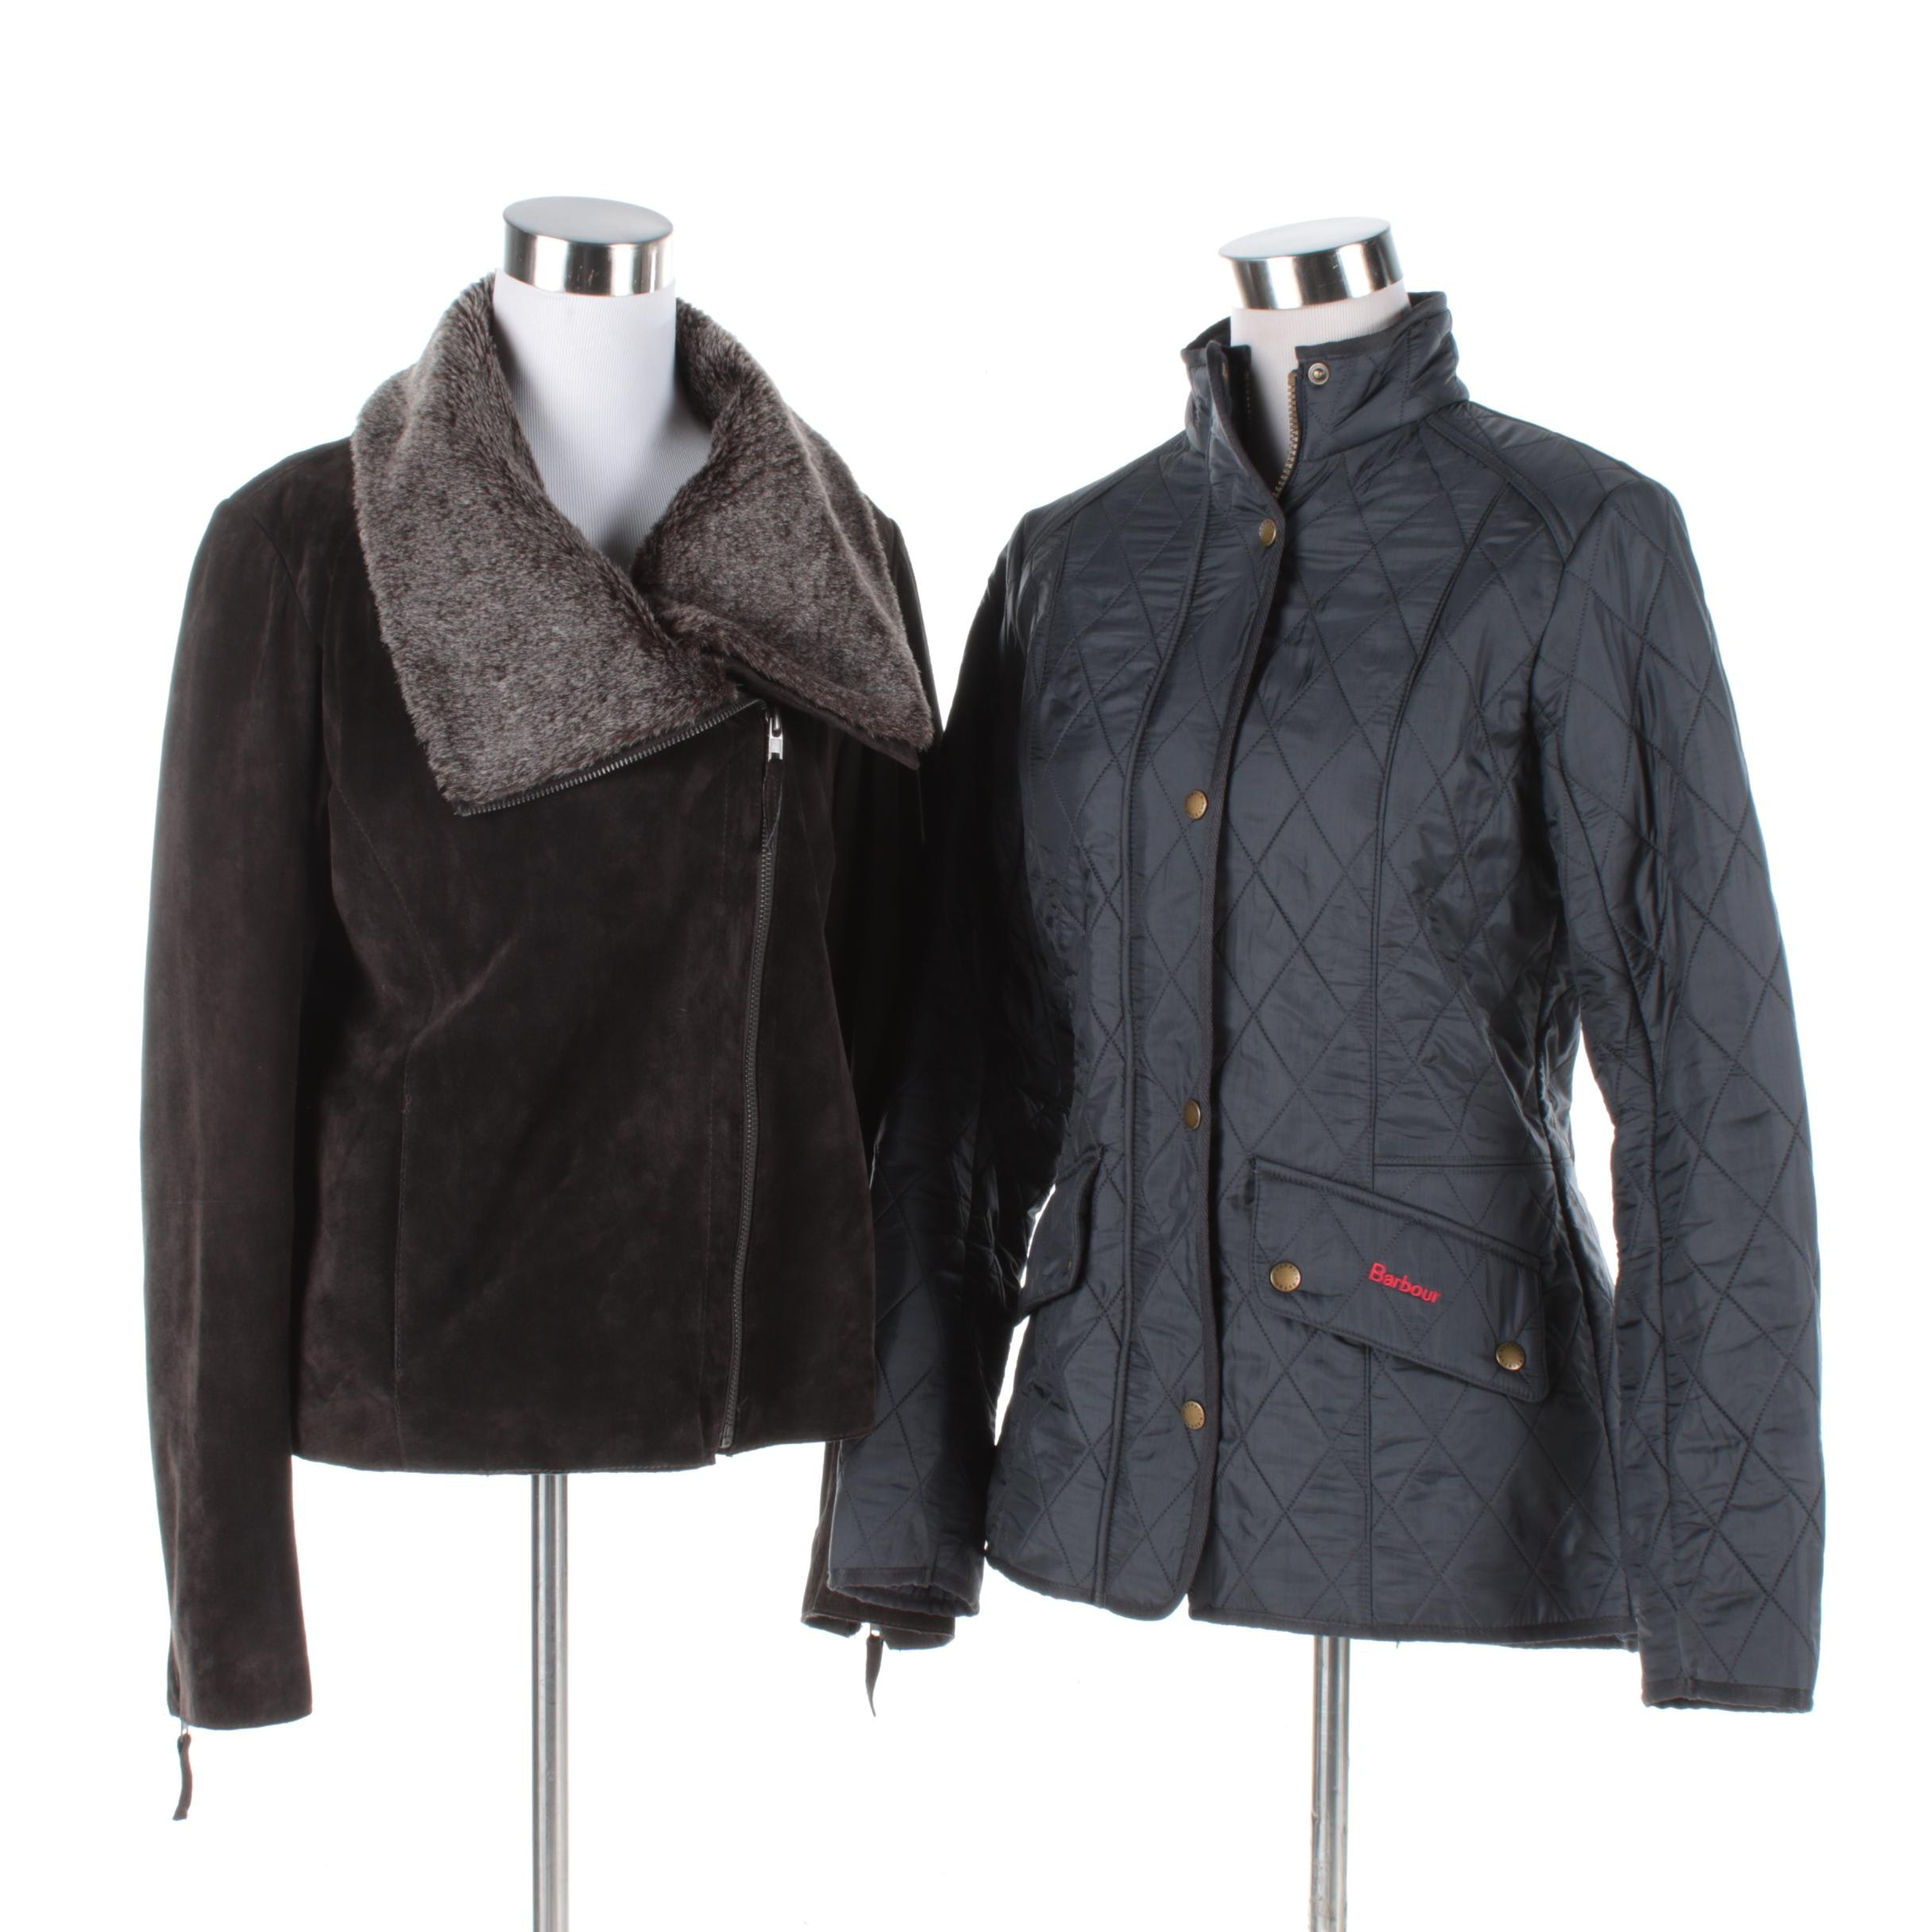 Women's Barbour and Ecru Jackets